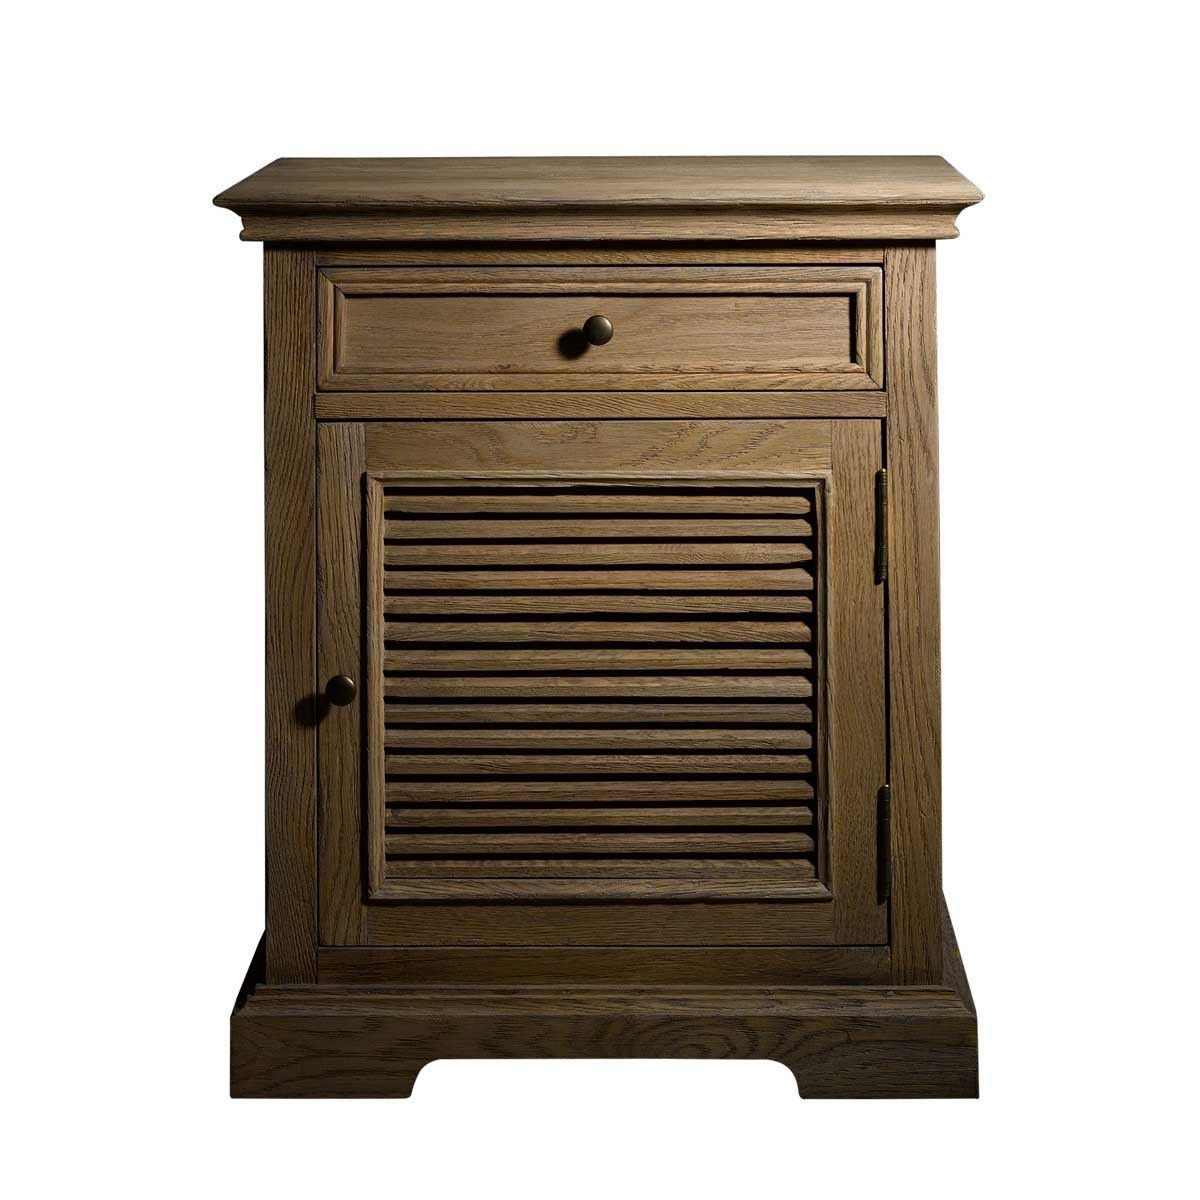 britania shutter accent table drawers shelves and doors with framed door produced weathered oak fixed shelf tablesshuttersdrawershelfcabinets ceiling curtain rod tray buffet